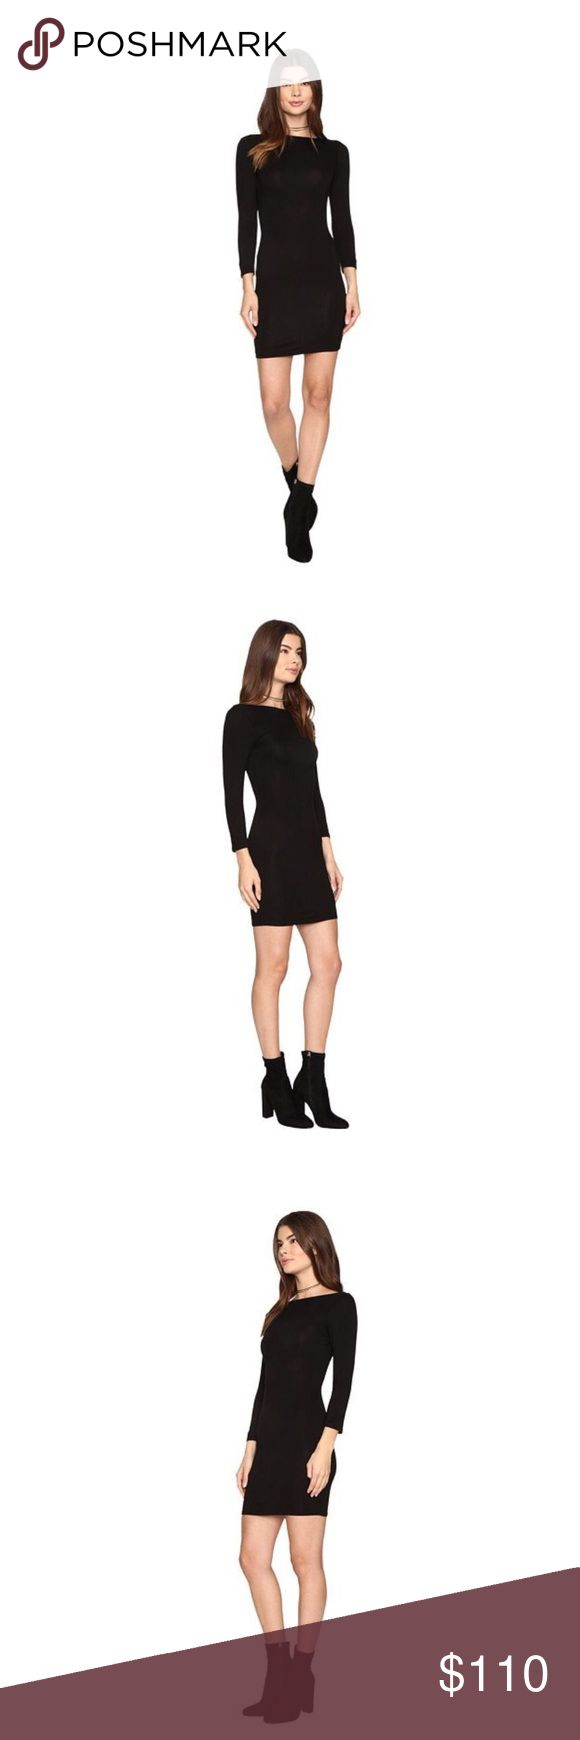 Julie lace up back dress. Super soft and comfy black dress. Clayton Dresses Backless